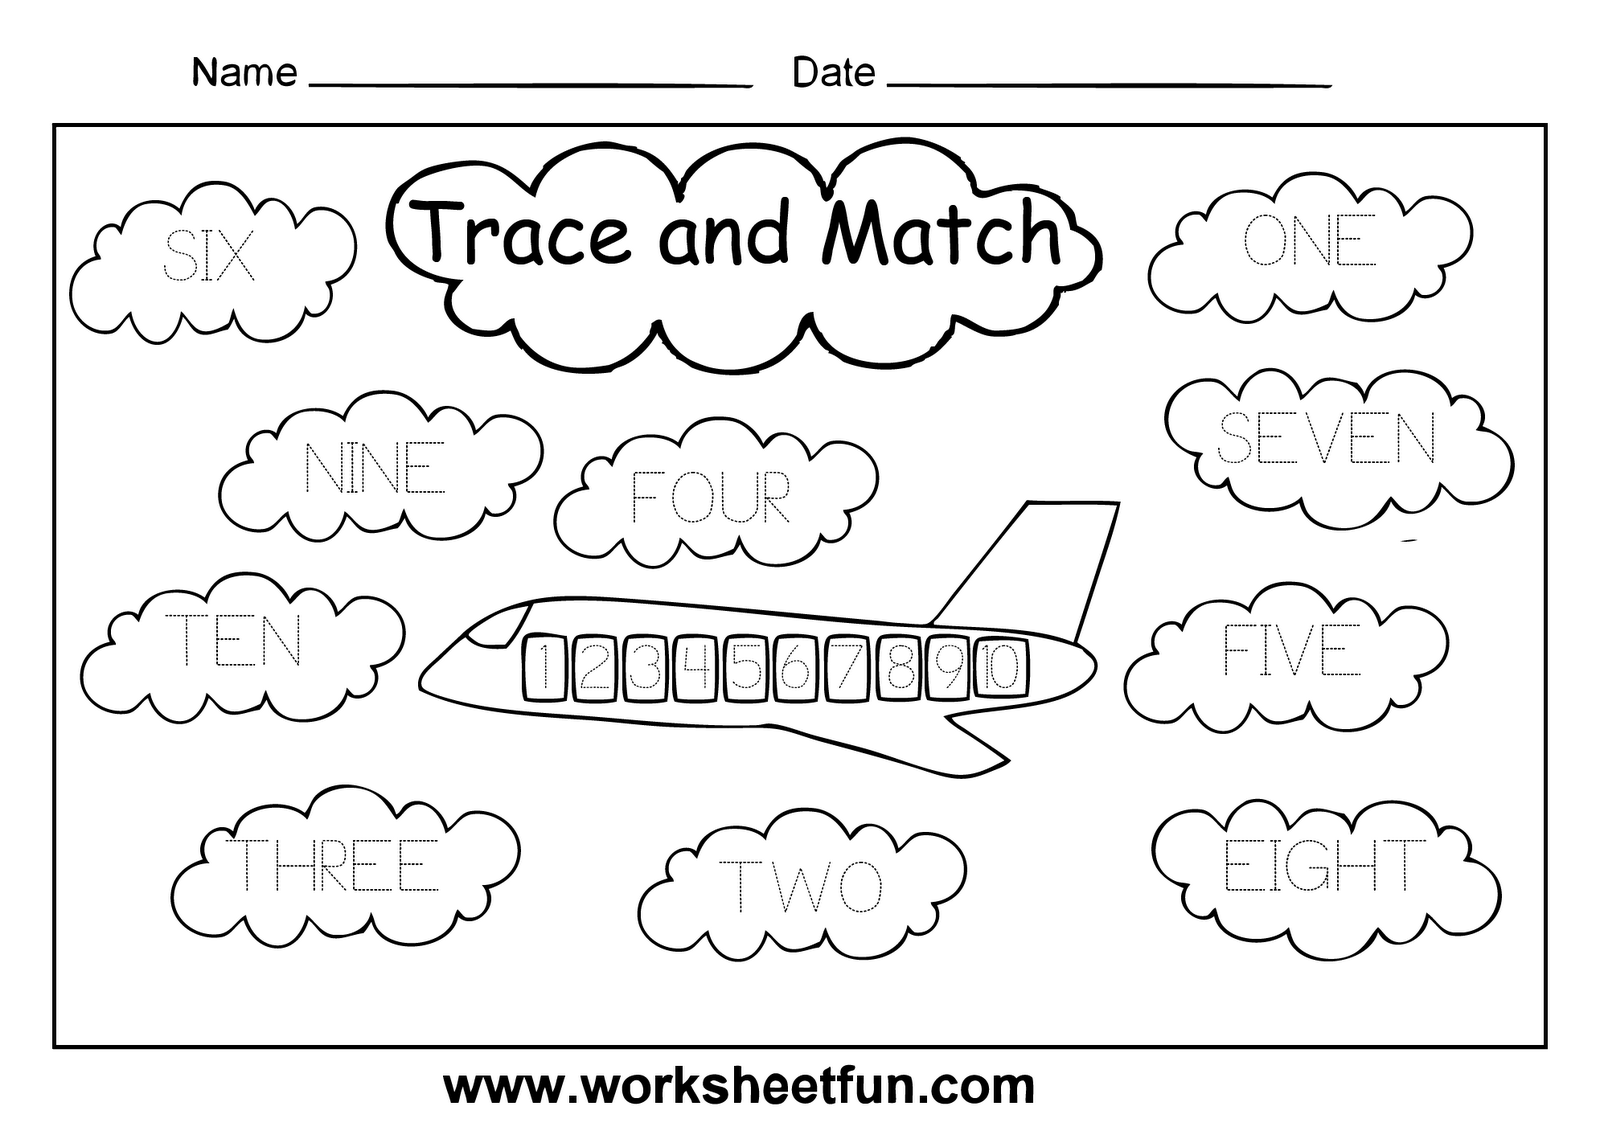 Weirdmailus  Terrific Worksheet Numbers    Reocurent With Outstanding Science Rd Grade Worksheets Besides Spelling Word Practice Worksheets Furthermore Worksheets For Grade  With Delightful Number Sets Worksheets Also Sudoku Worksheet In Addition Beginning Letter Sounds Worksheets And Addition Fraction Worksheets As Well As  Digit Addition Worksheets Additionally Direct Objects Worksheets From Reocurentcom With Weirdmailus  Outstanding Worksheet Numbers    Reocurent With Delightful Science Rd Grade Worksheets Besides Spelling Word Practice Worksheets Furthermore Worksheets For Grade  And Terrific Number Sets Worksheets Also Sudoku Worksheet In Addition Beginning Letter Sounds Worksheets From Reocurentcom